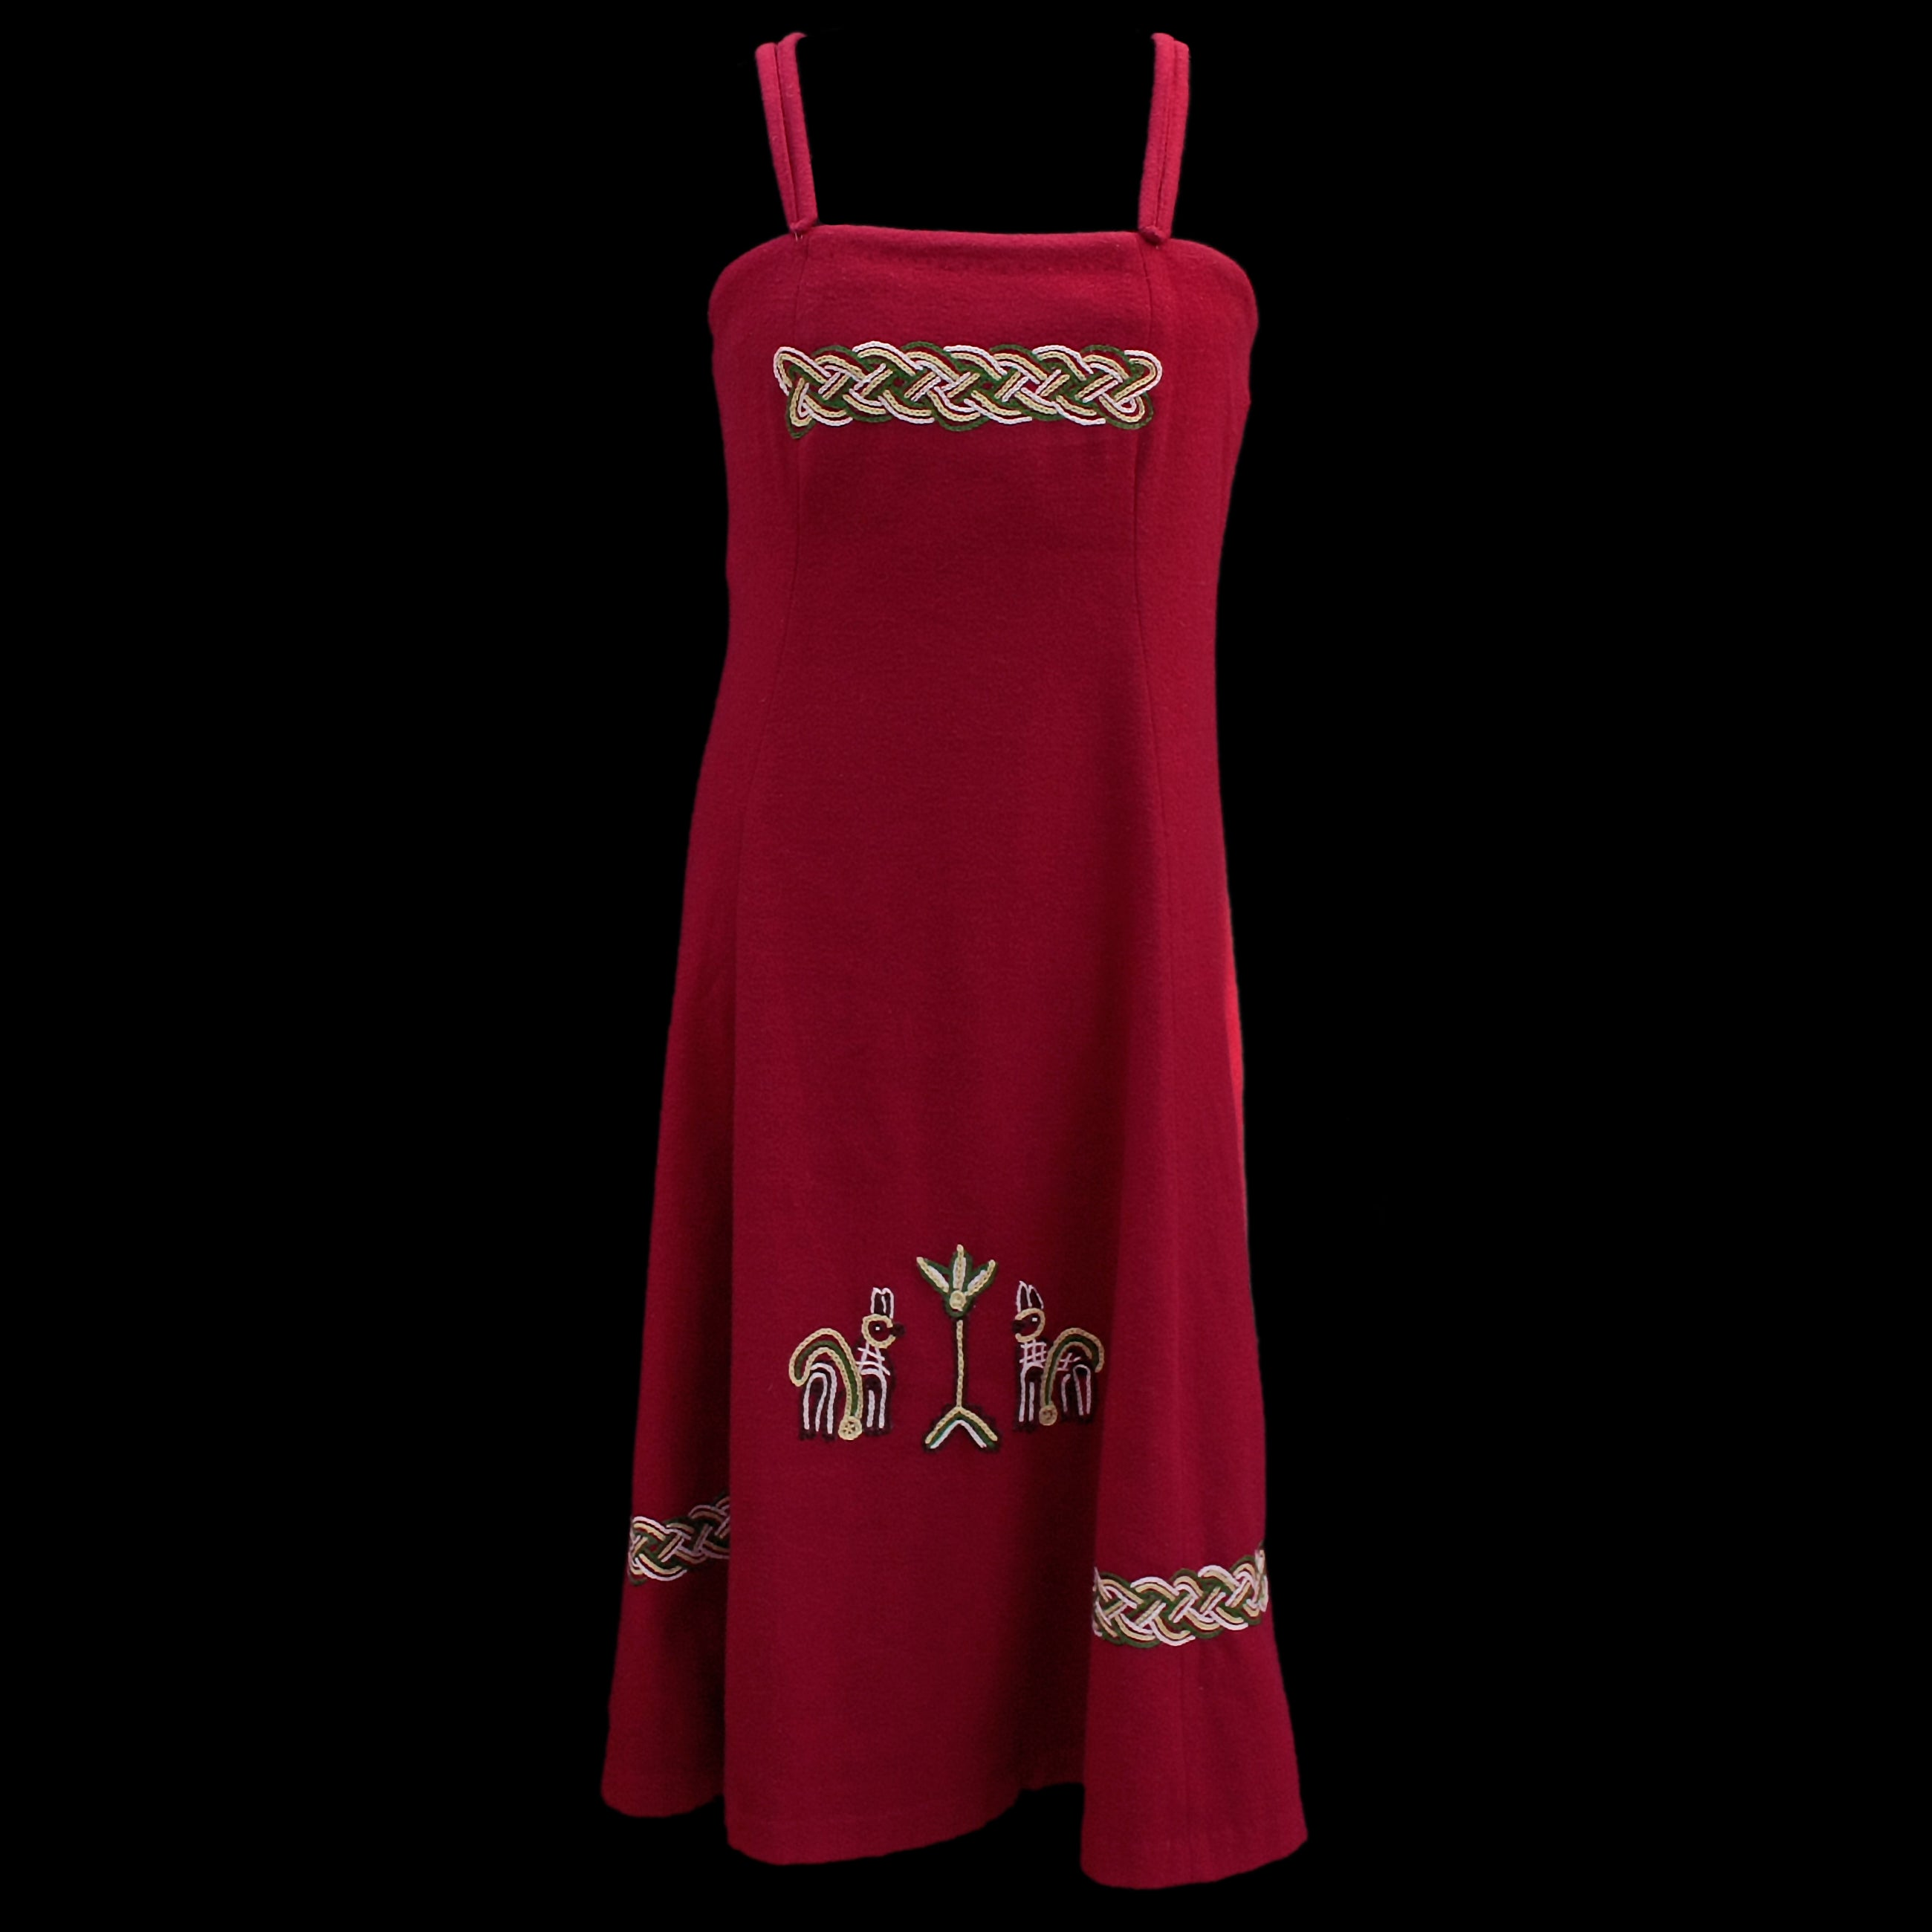 Women's Embroidered Wool Viking Hangerock / Overdress - Red